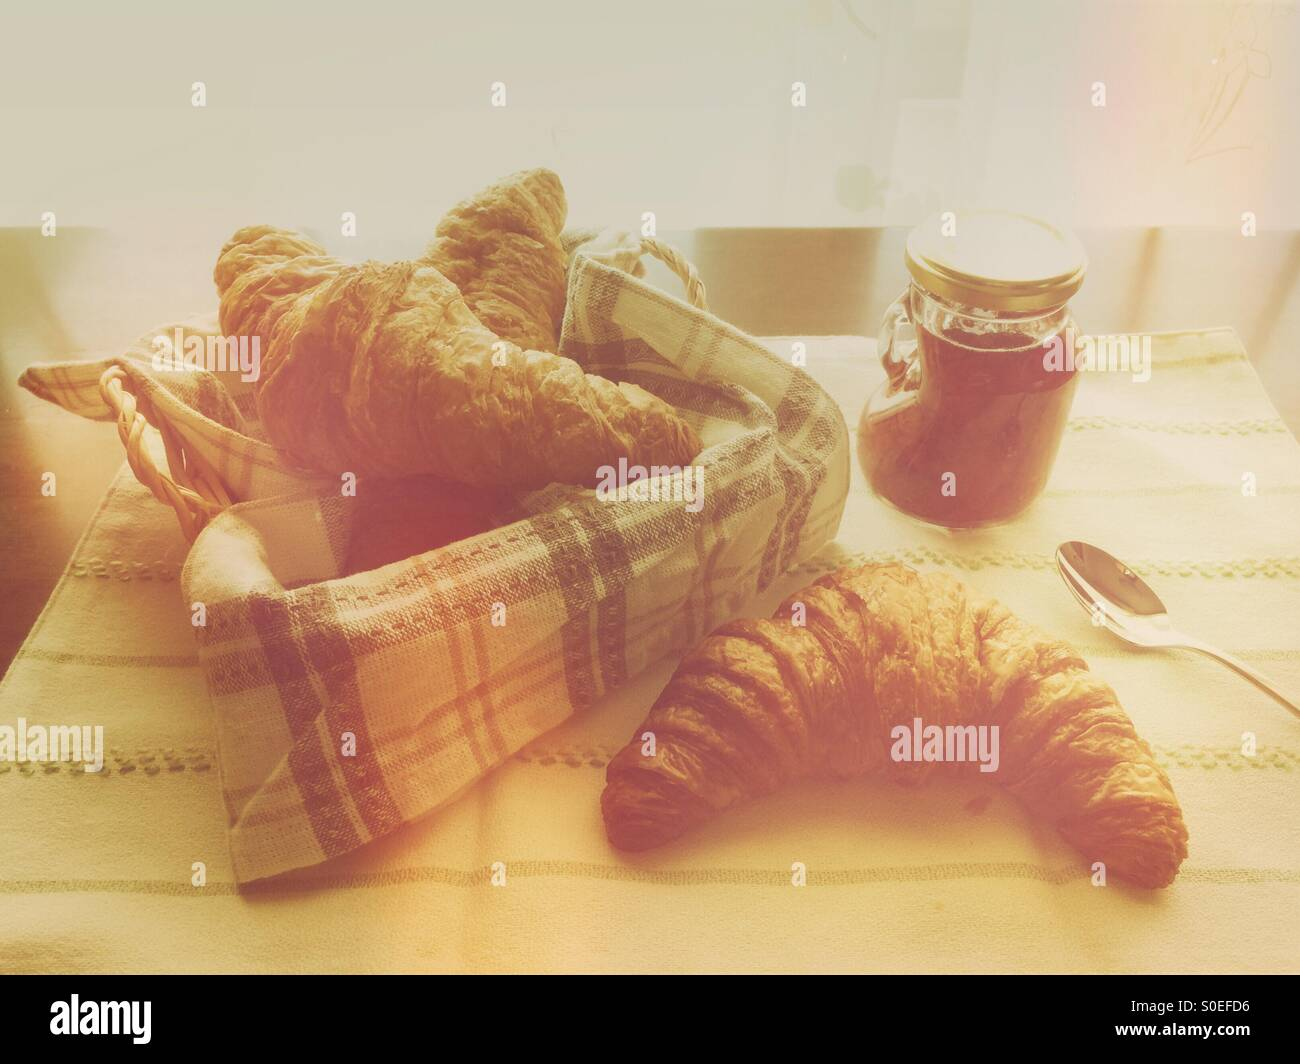 Small jar of homemade strawberry jam, bread basket with croissant, striped cloth and silver spoon. Warm, retro tones. Stock Photo